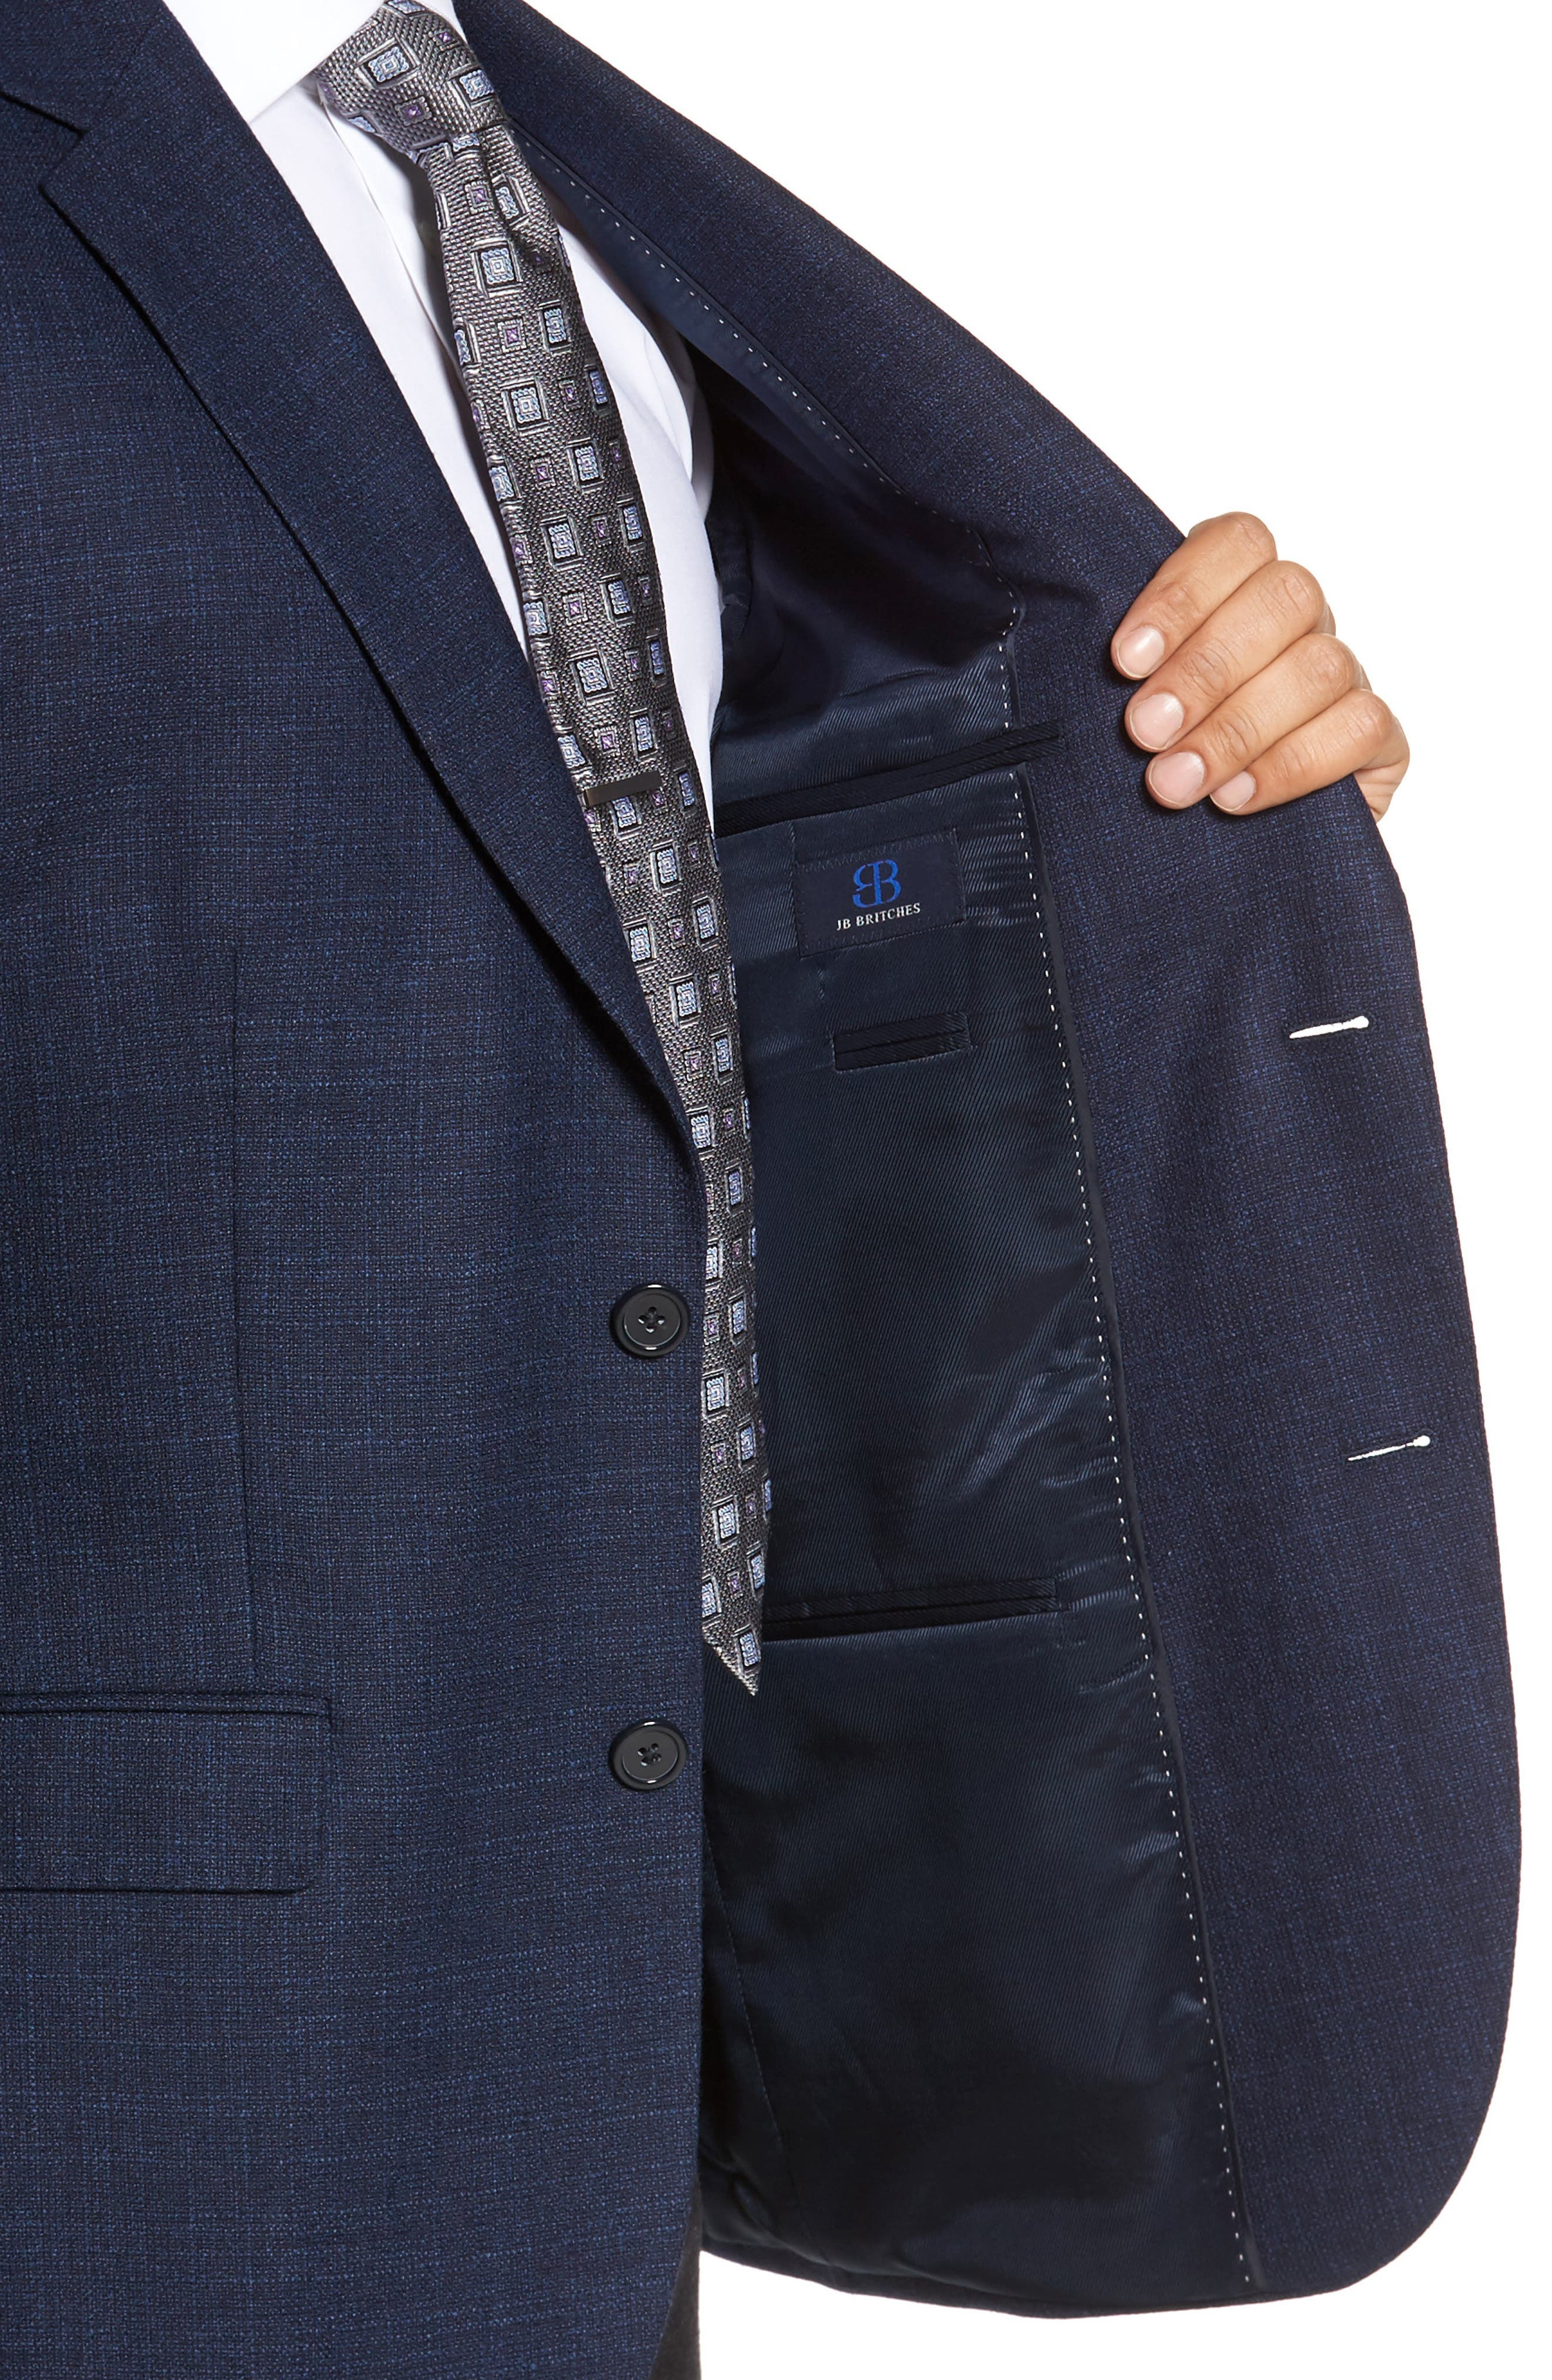 Classic Fit Wool Blazer,                             Alternate thumbnail 4, color,                             422